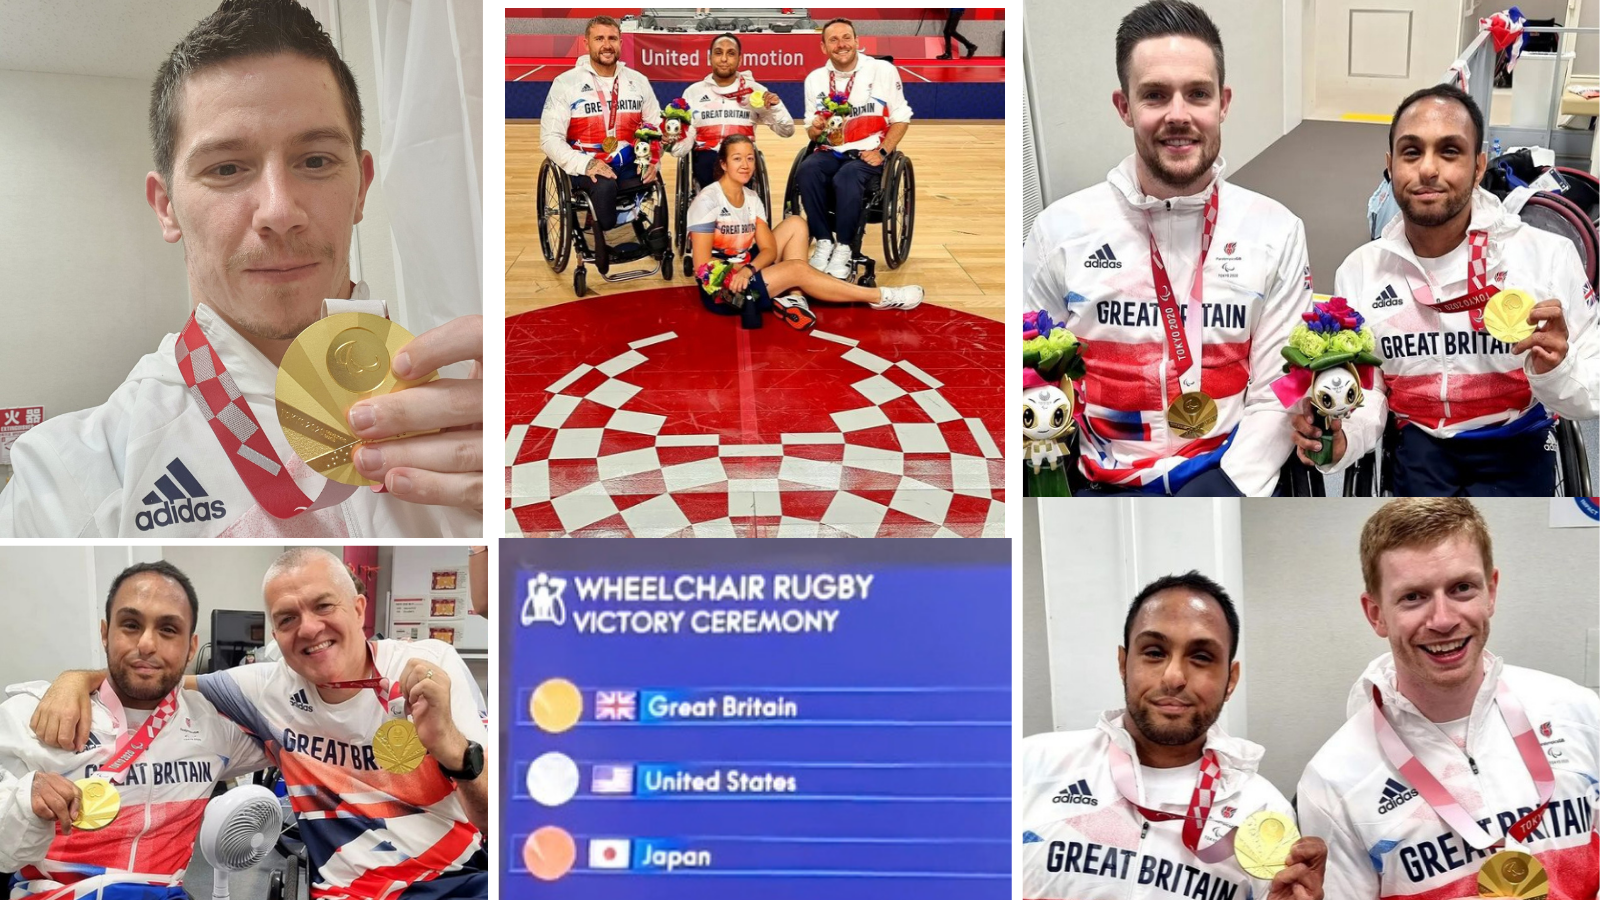 Great Britain Wheelchair Rugby Team make history and win Gold medal at Paralympics